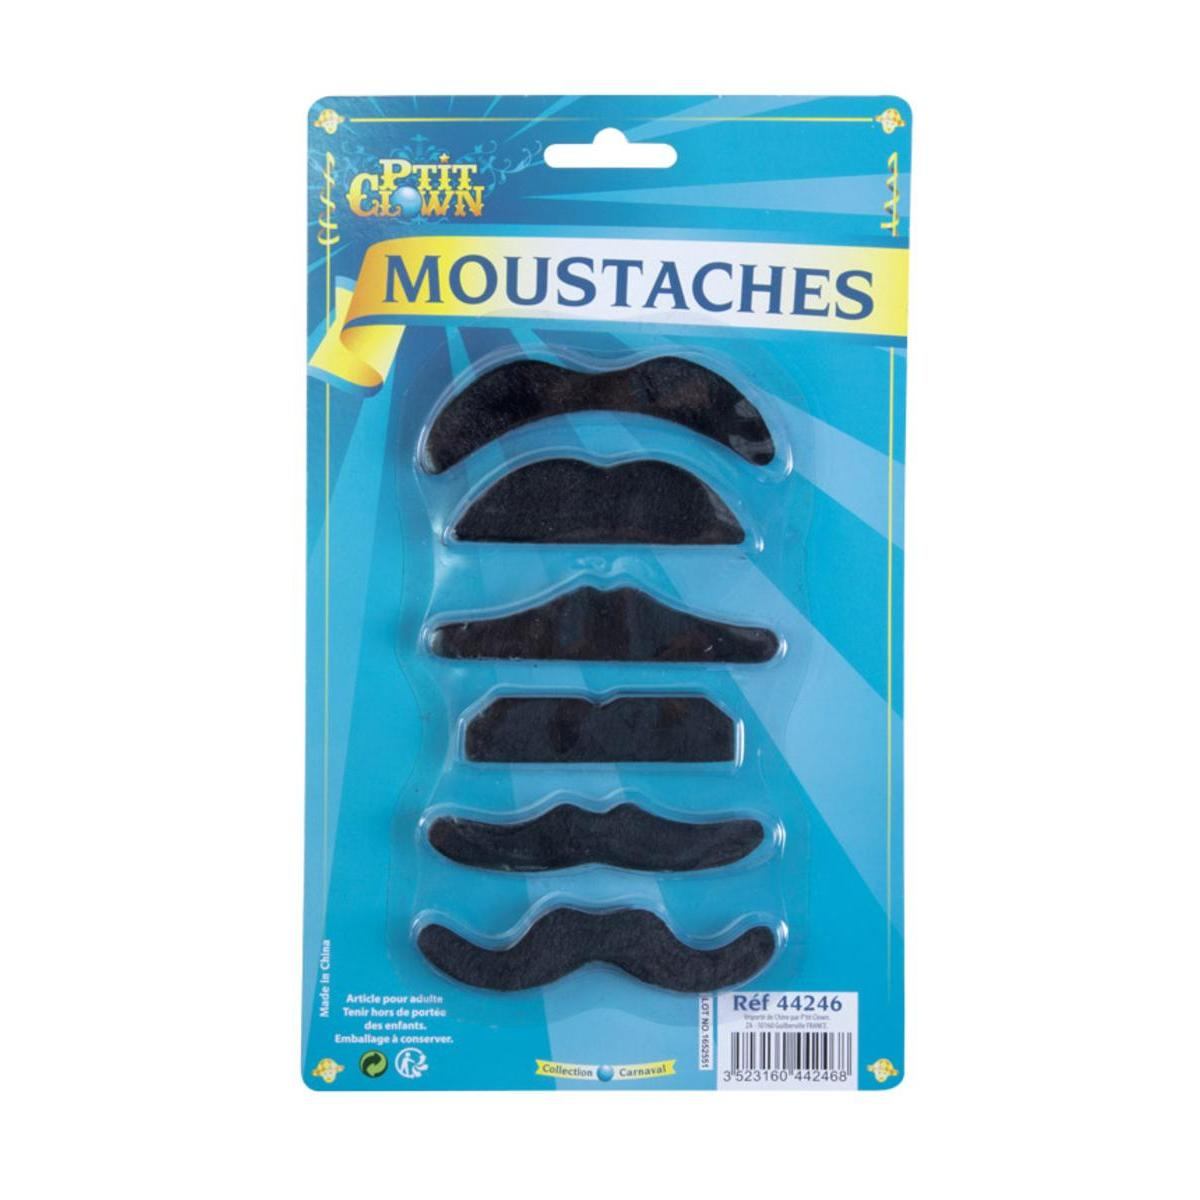 6 moustaches assorties